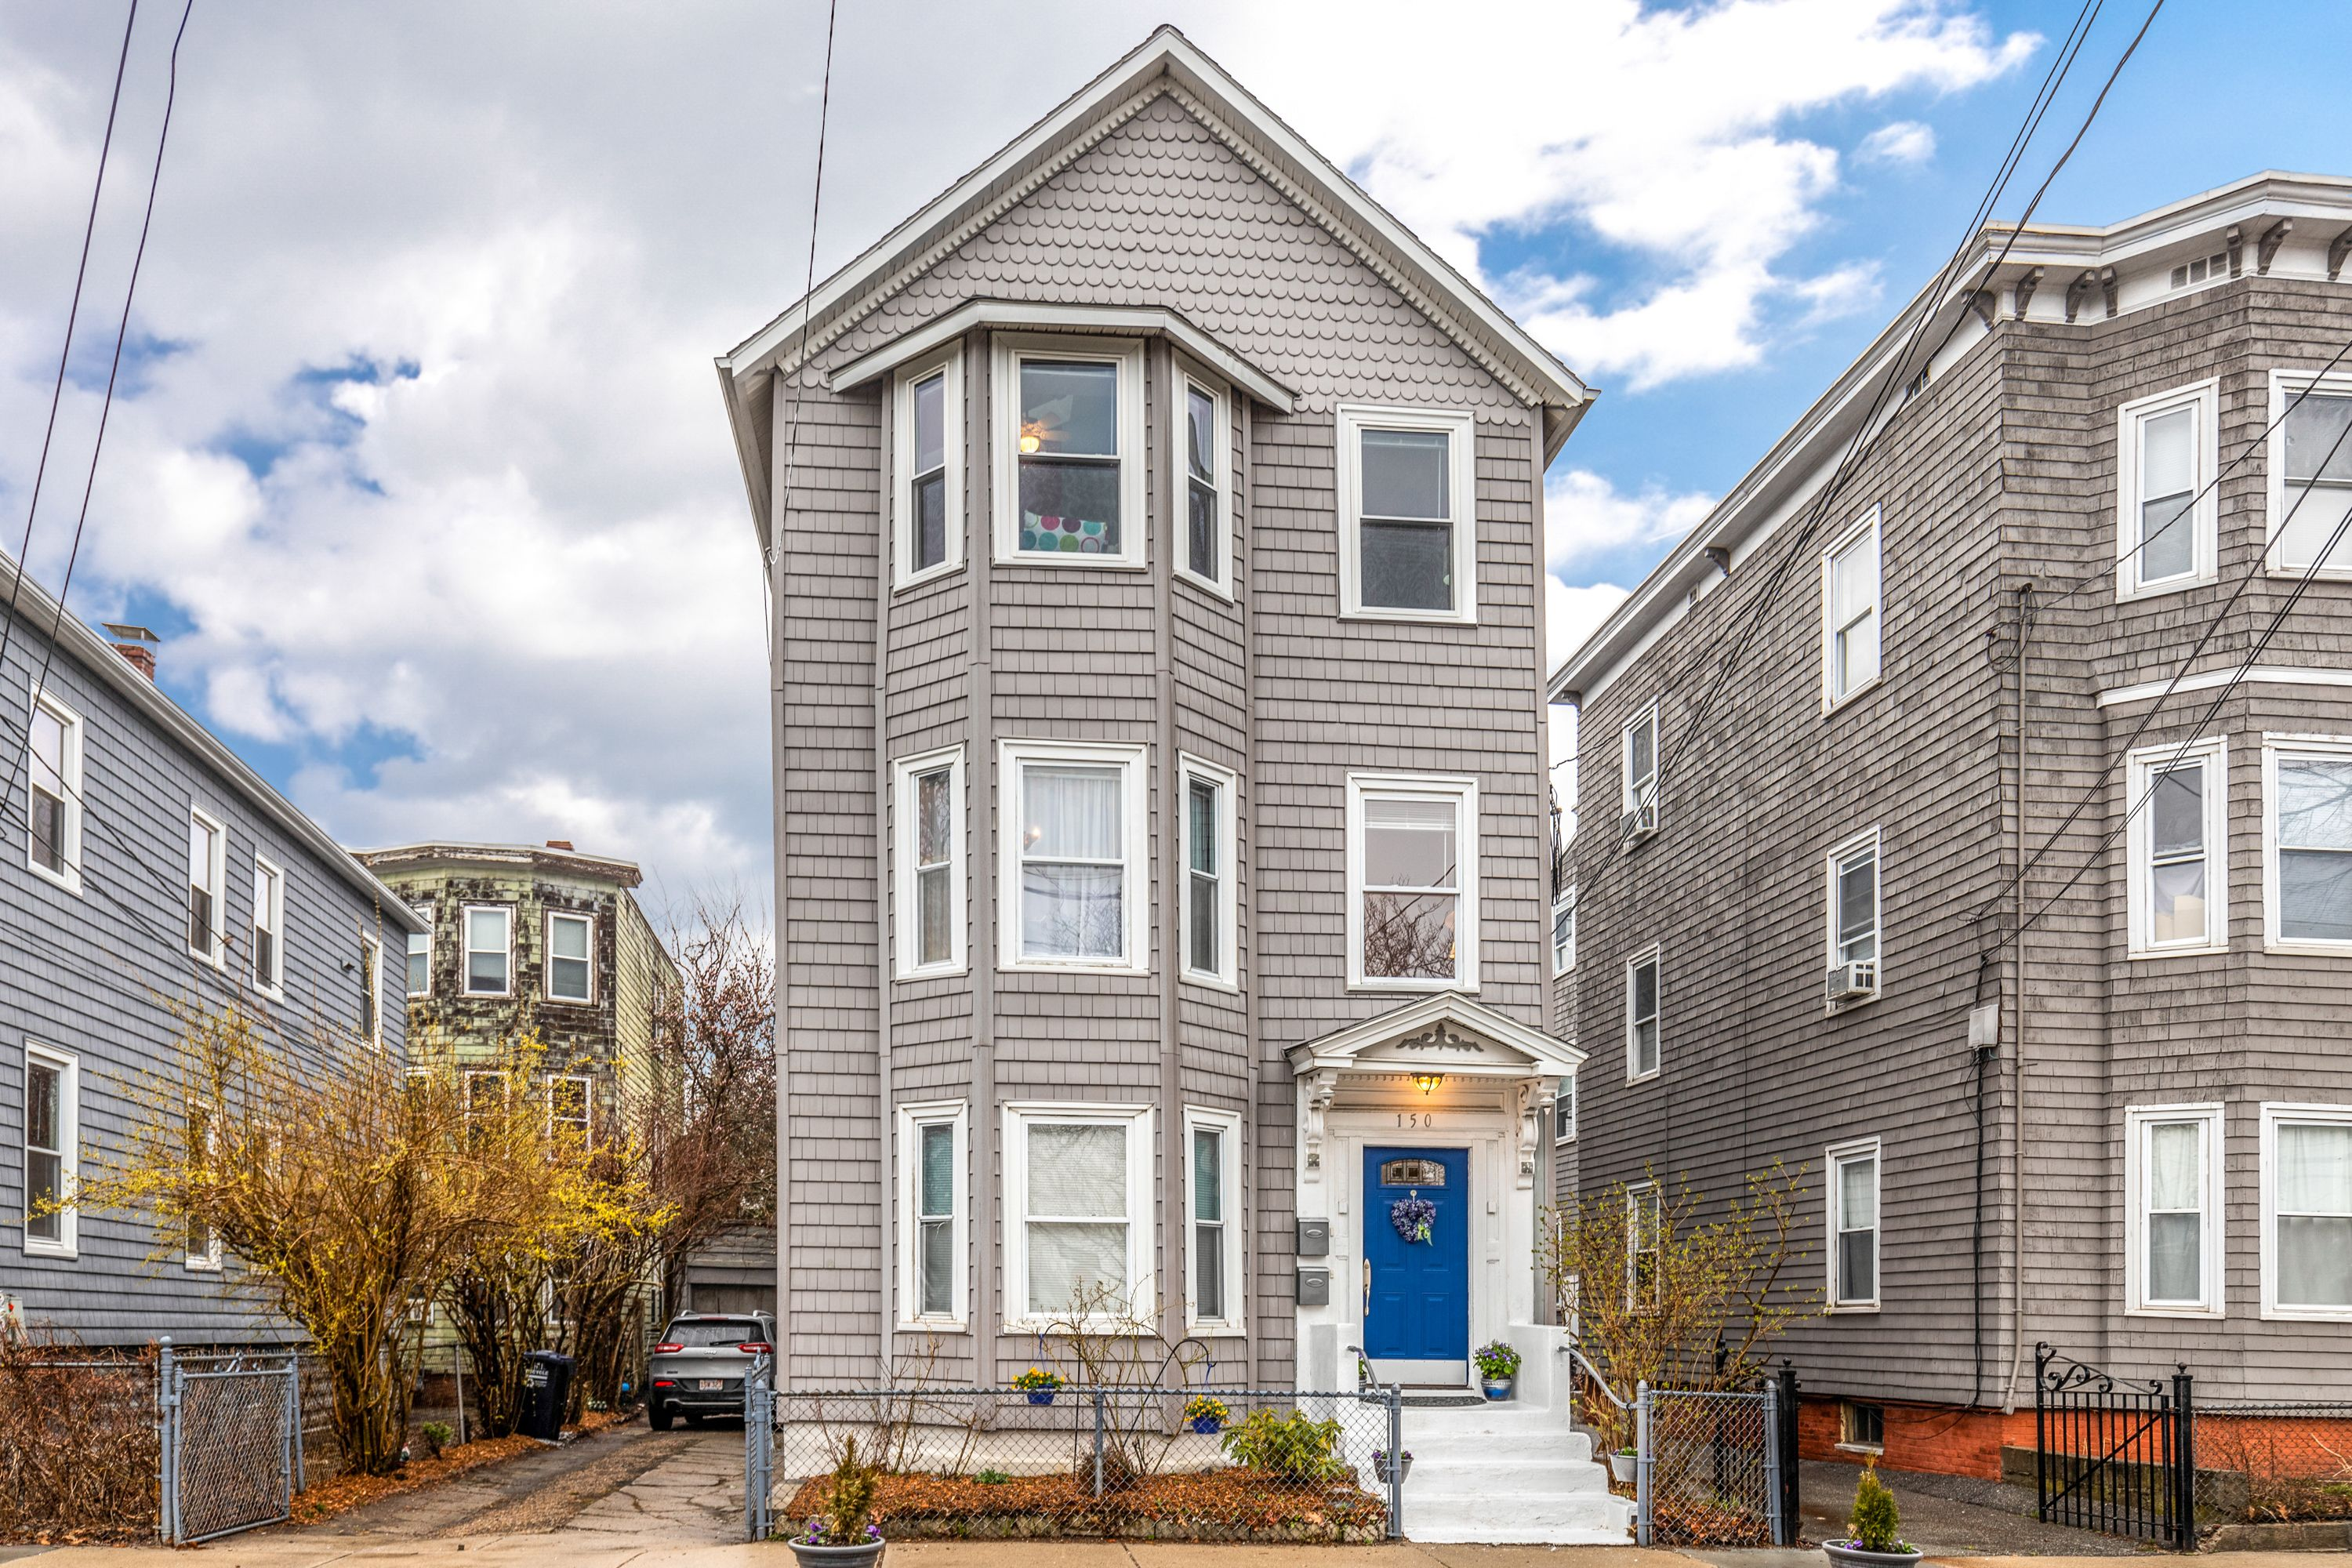 Just Listed Here S A Rare Opportunity To Own A 2 Family Home In Cambridge Located Less Than A Mile From Inman Sq Kendall Sq Central Boston Real Estate House Styles Real Estate